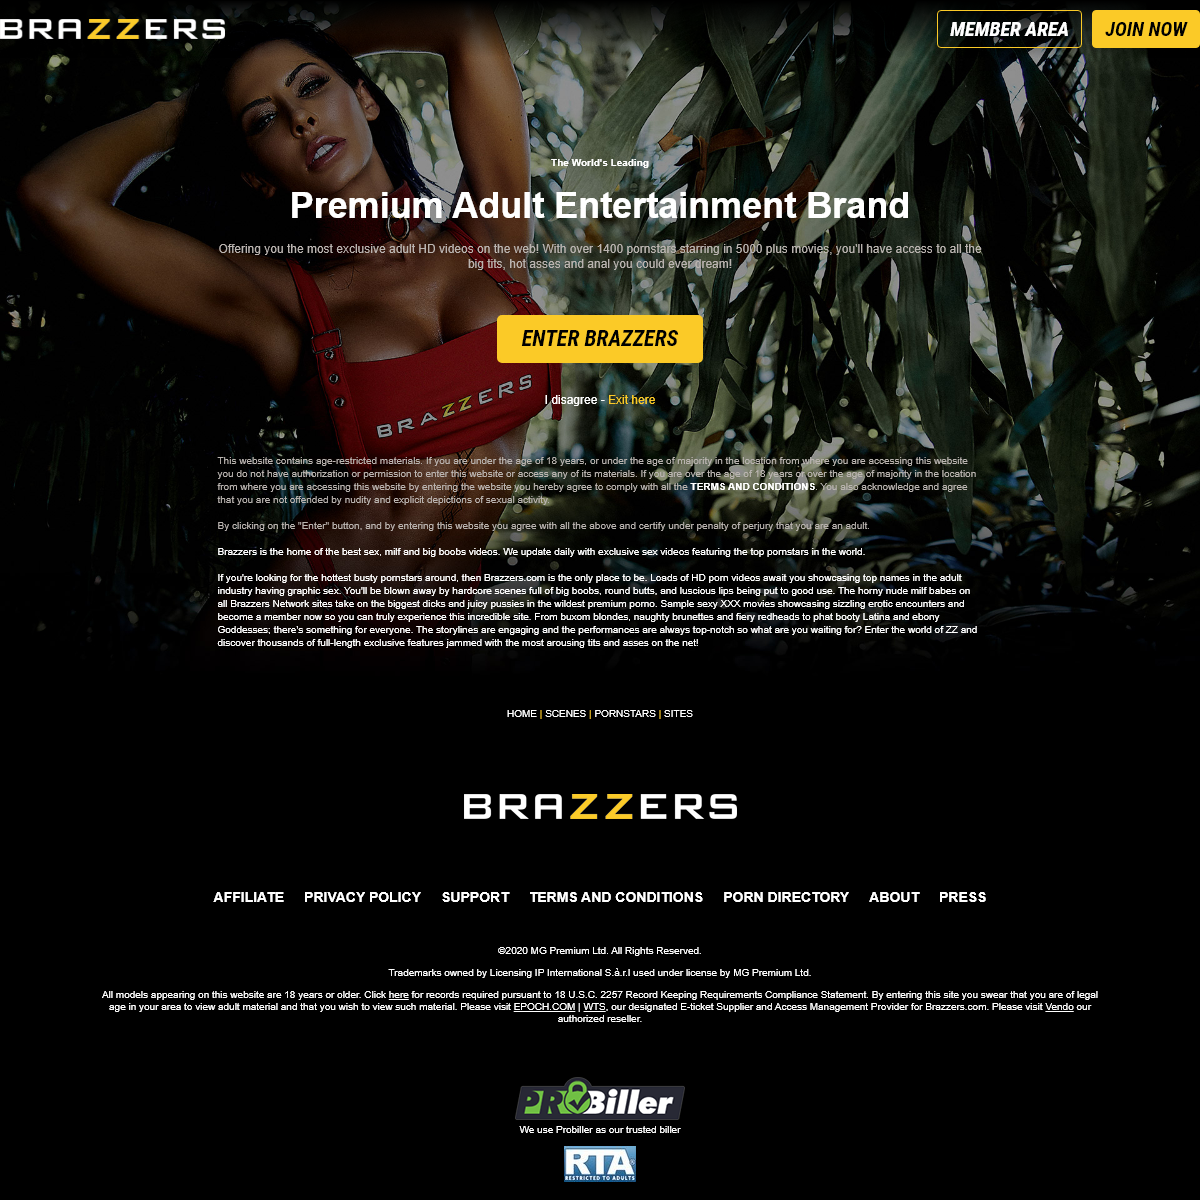 Brazzers - Official HD Porn Site